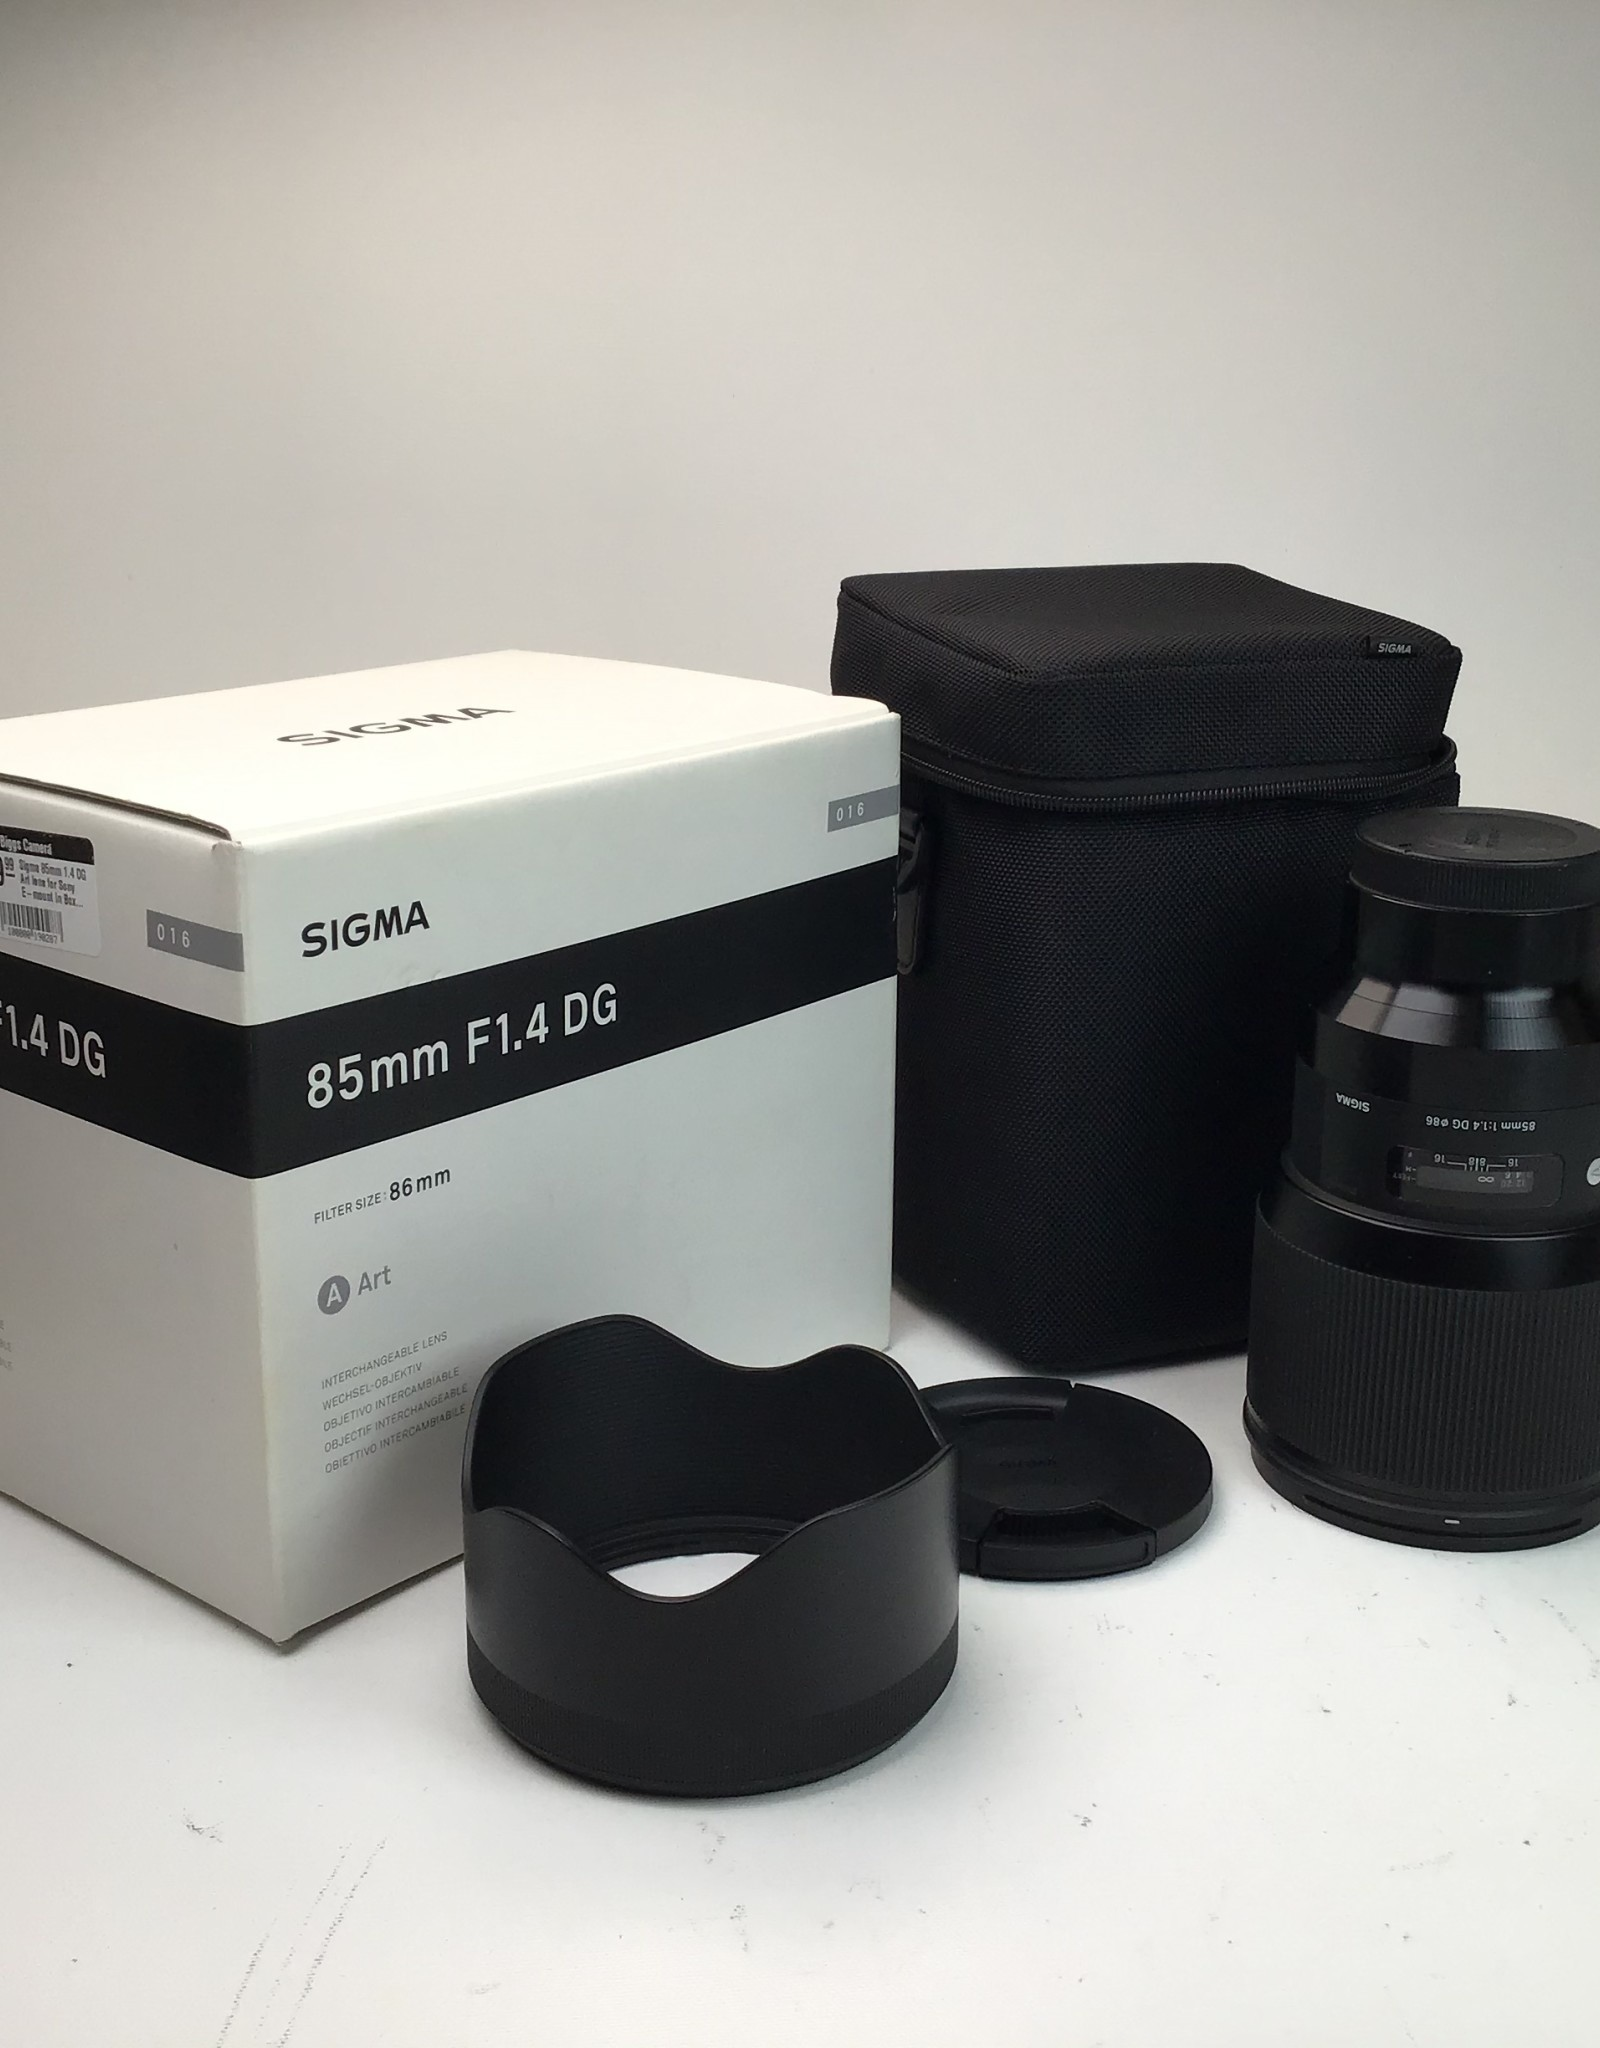 SIGMA Sigma 85mm 1.4 DG Art lens for Sony E-mount In Box Used EX